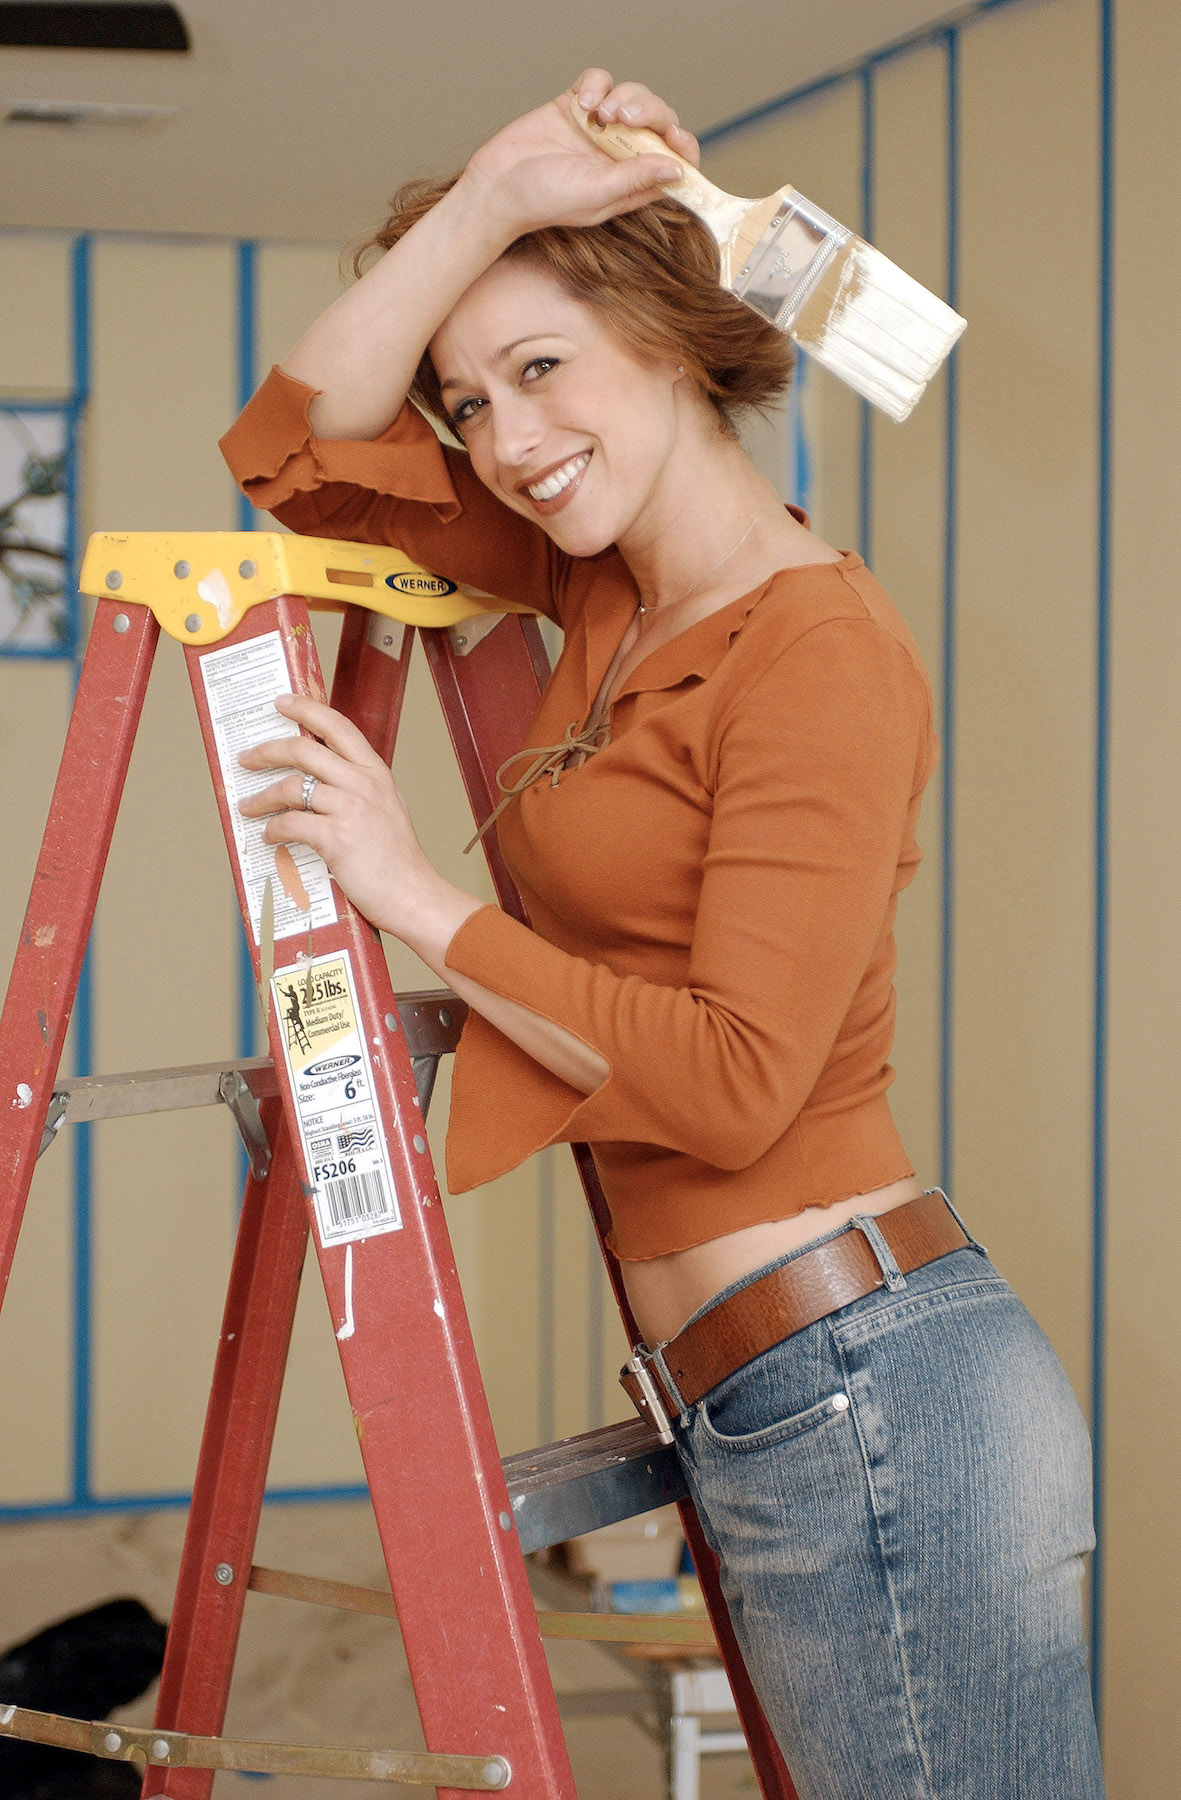 Trading Spaces Paige Davis with paintbrush on ladder